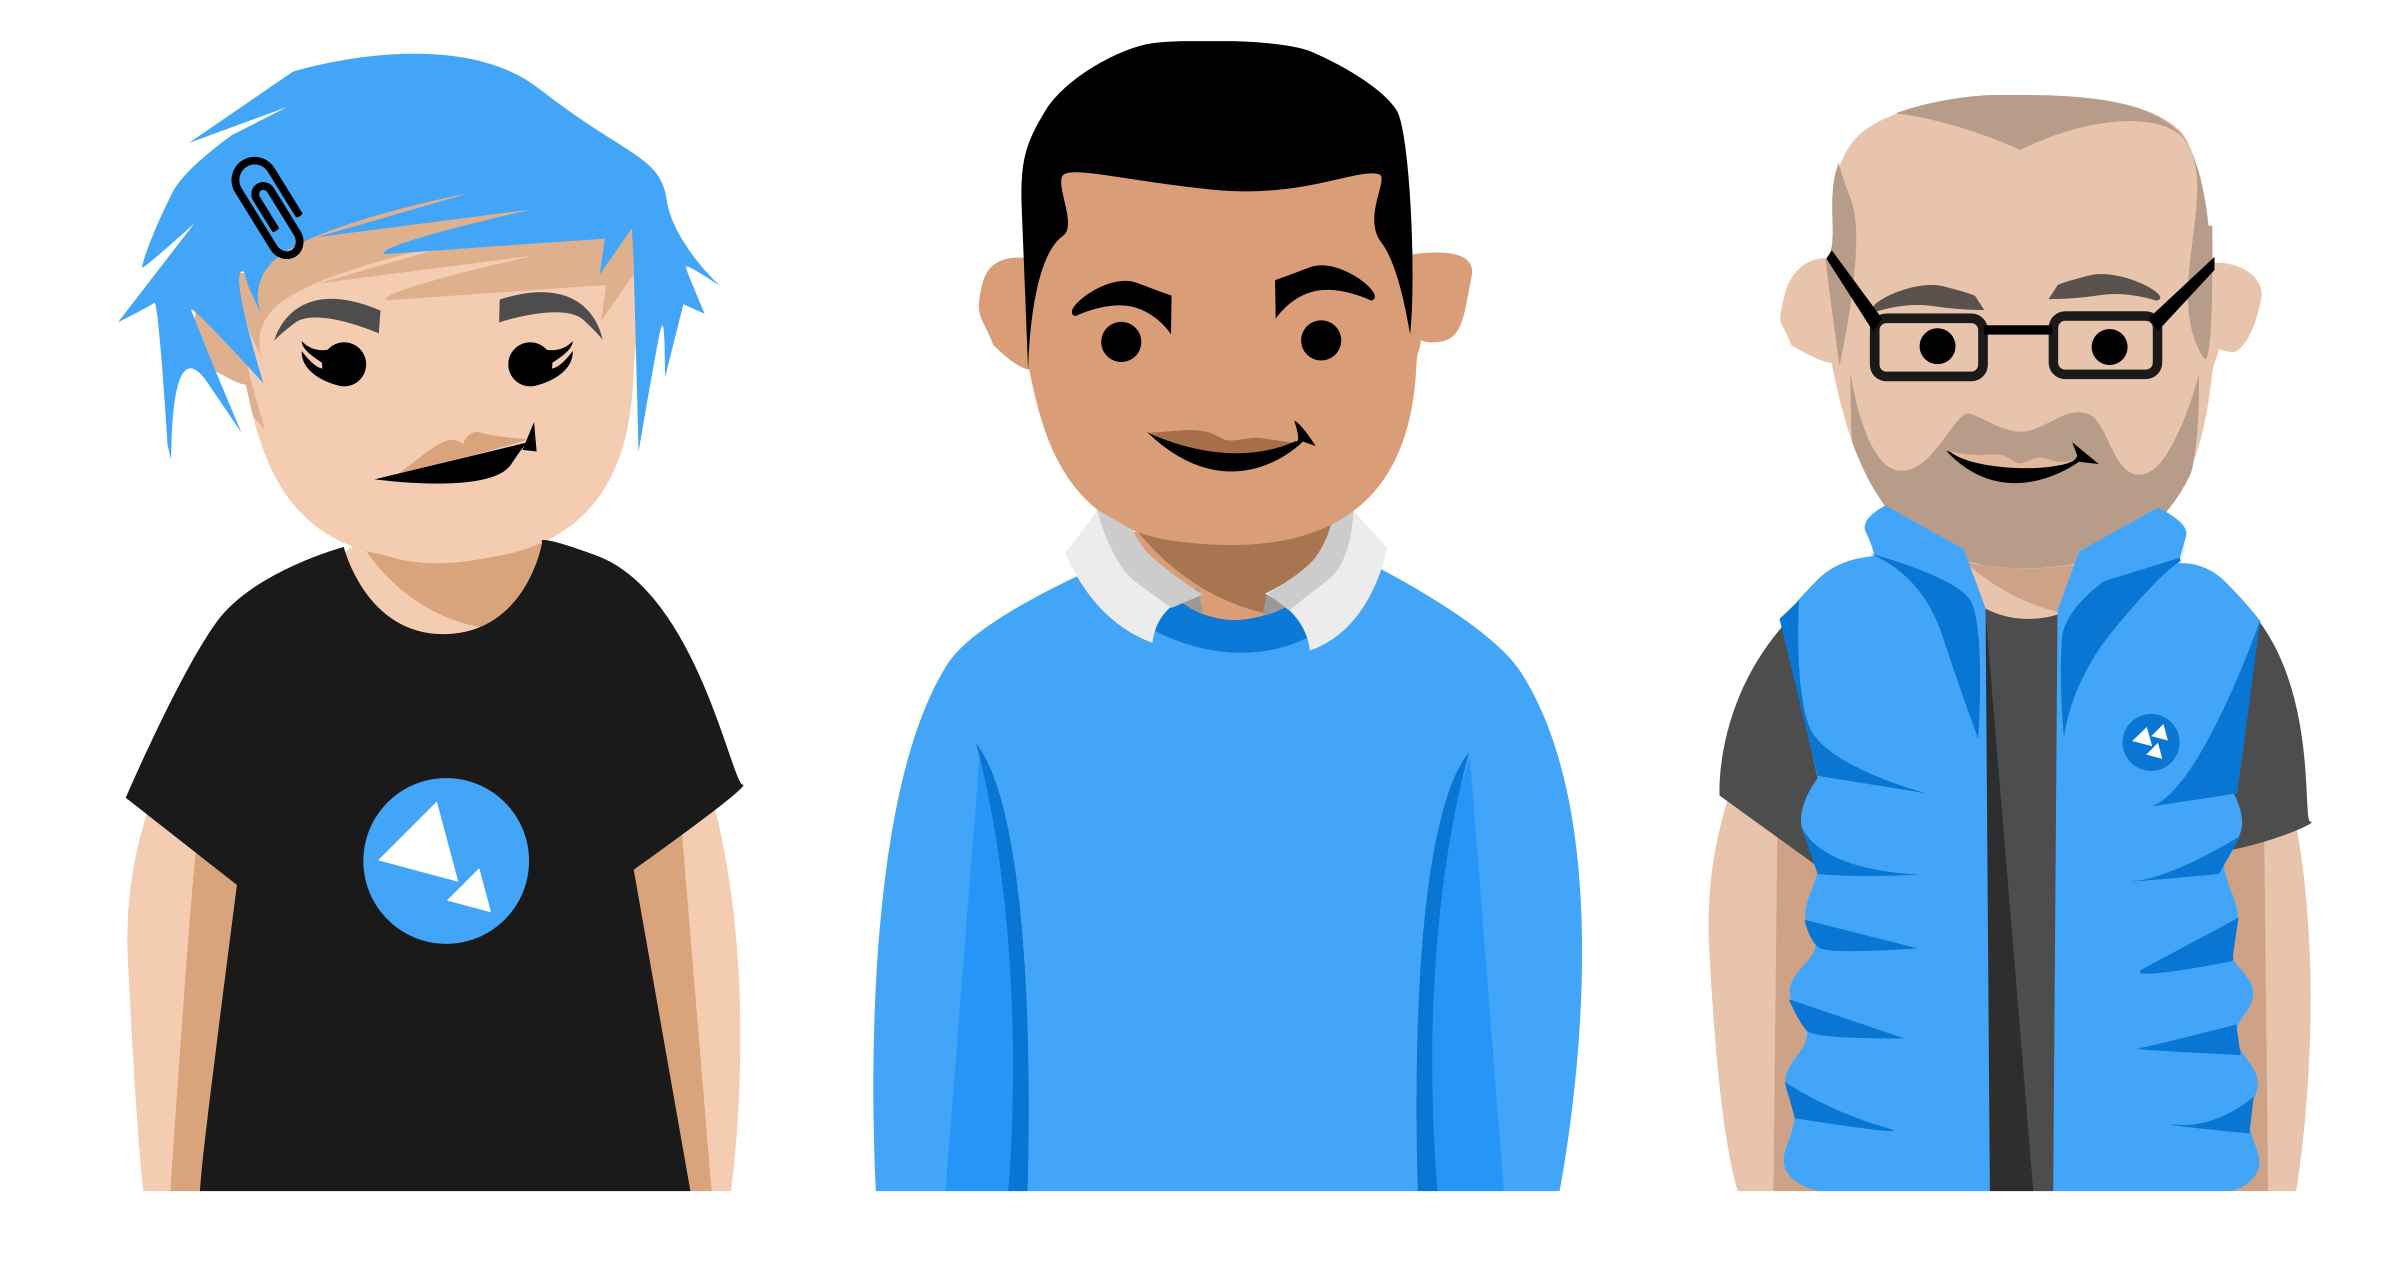 Three developers character set vector clipart image.